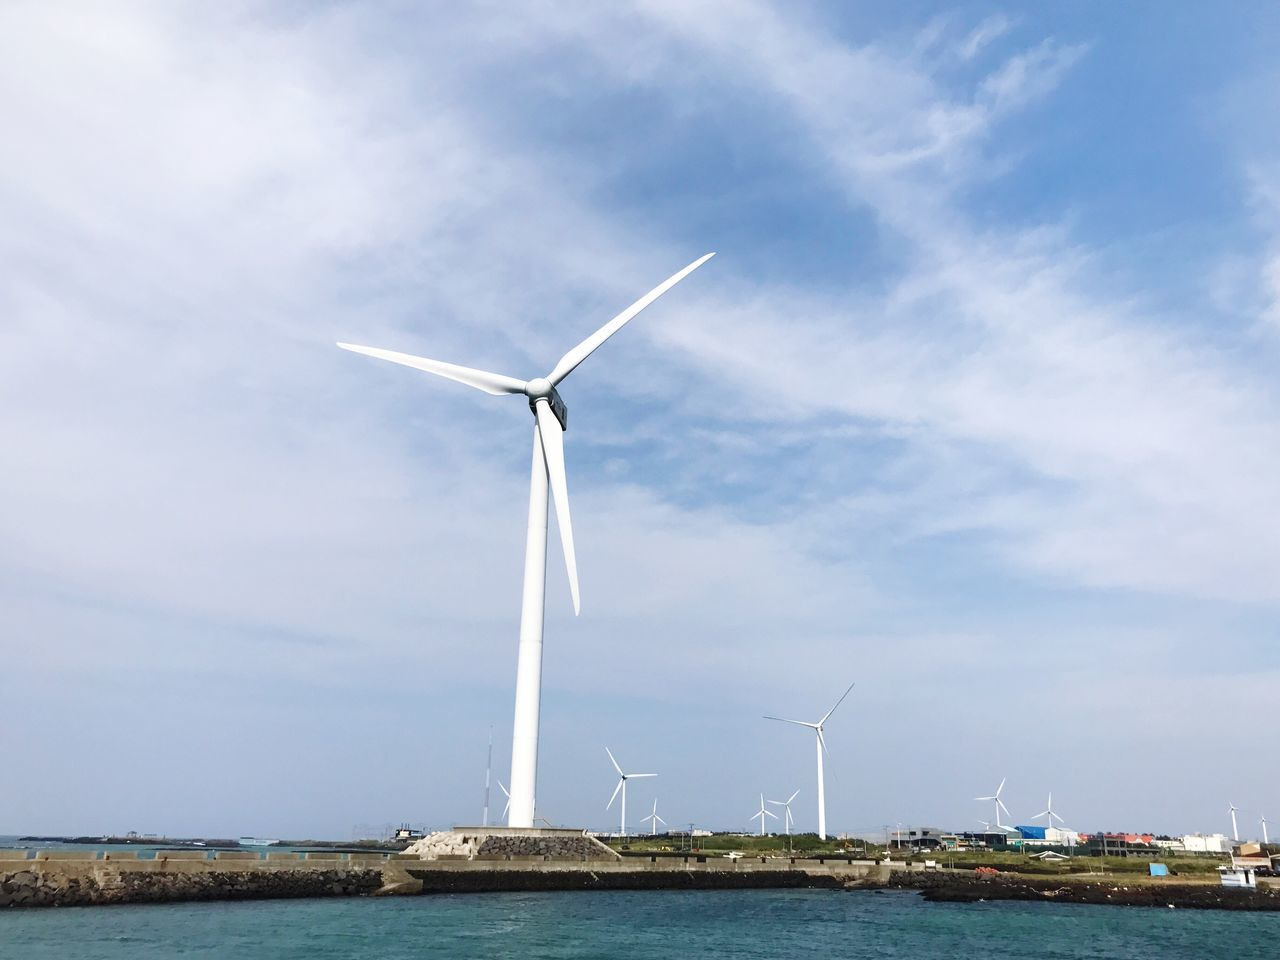 environmental conservation, renewable energy, alternative energy, wind turbine, turbine, wind power, sky, fuel and power generation, environment, water, cloud - sky, day, nature, no people, beauty in nature, sea, waterfront, transportation, scenics - nature, outdoors, sustainable resources